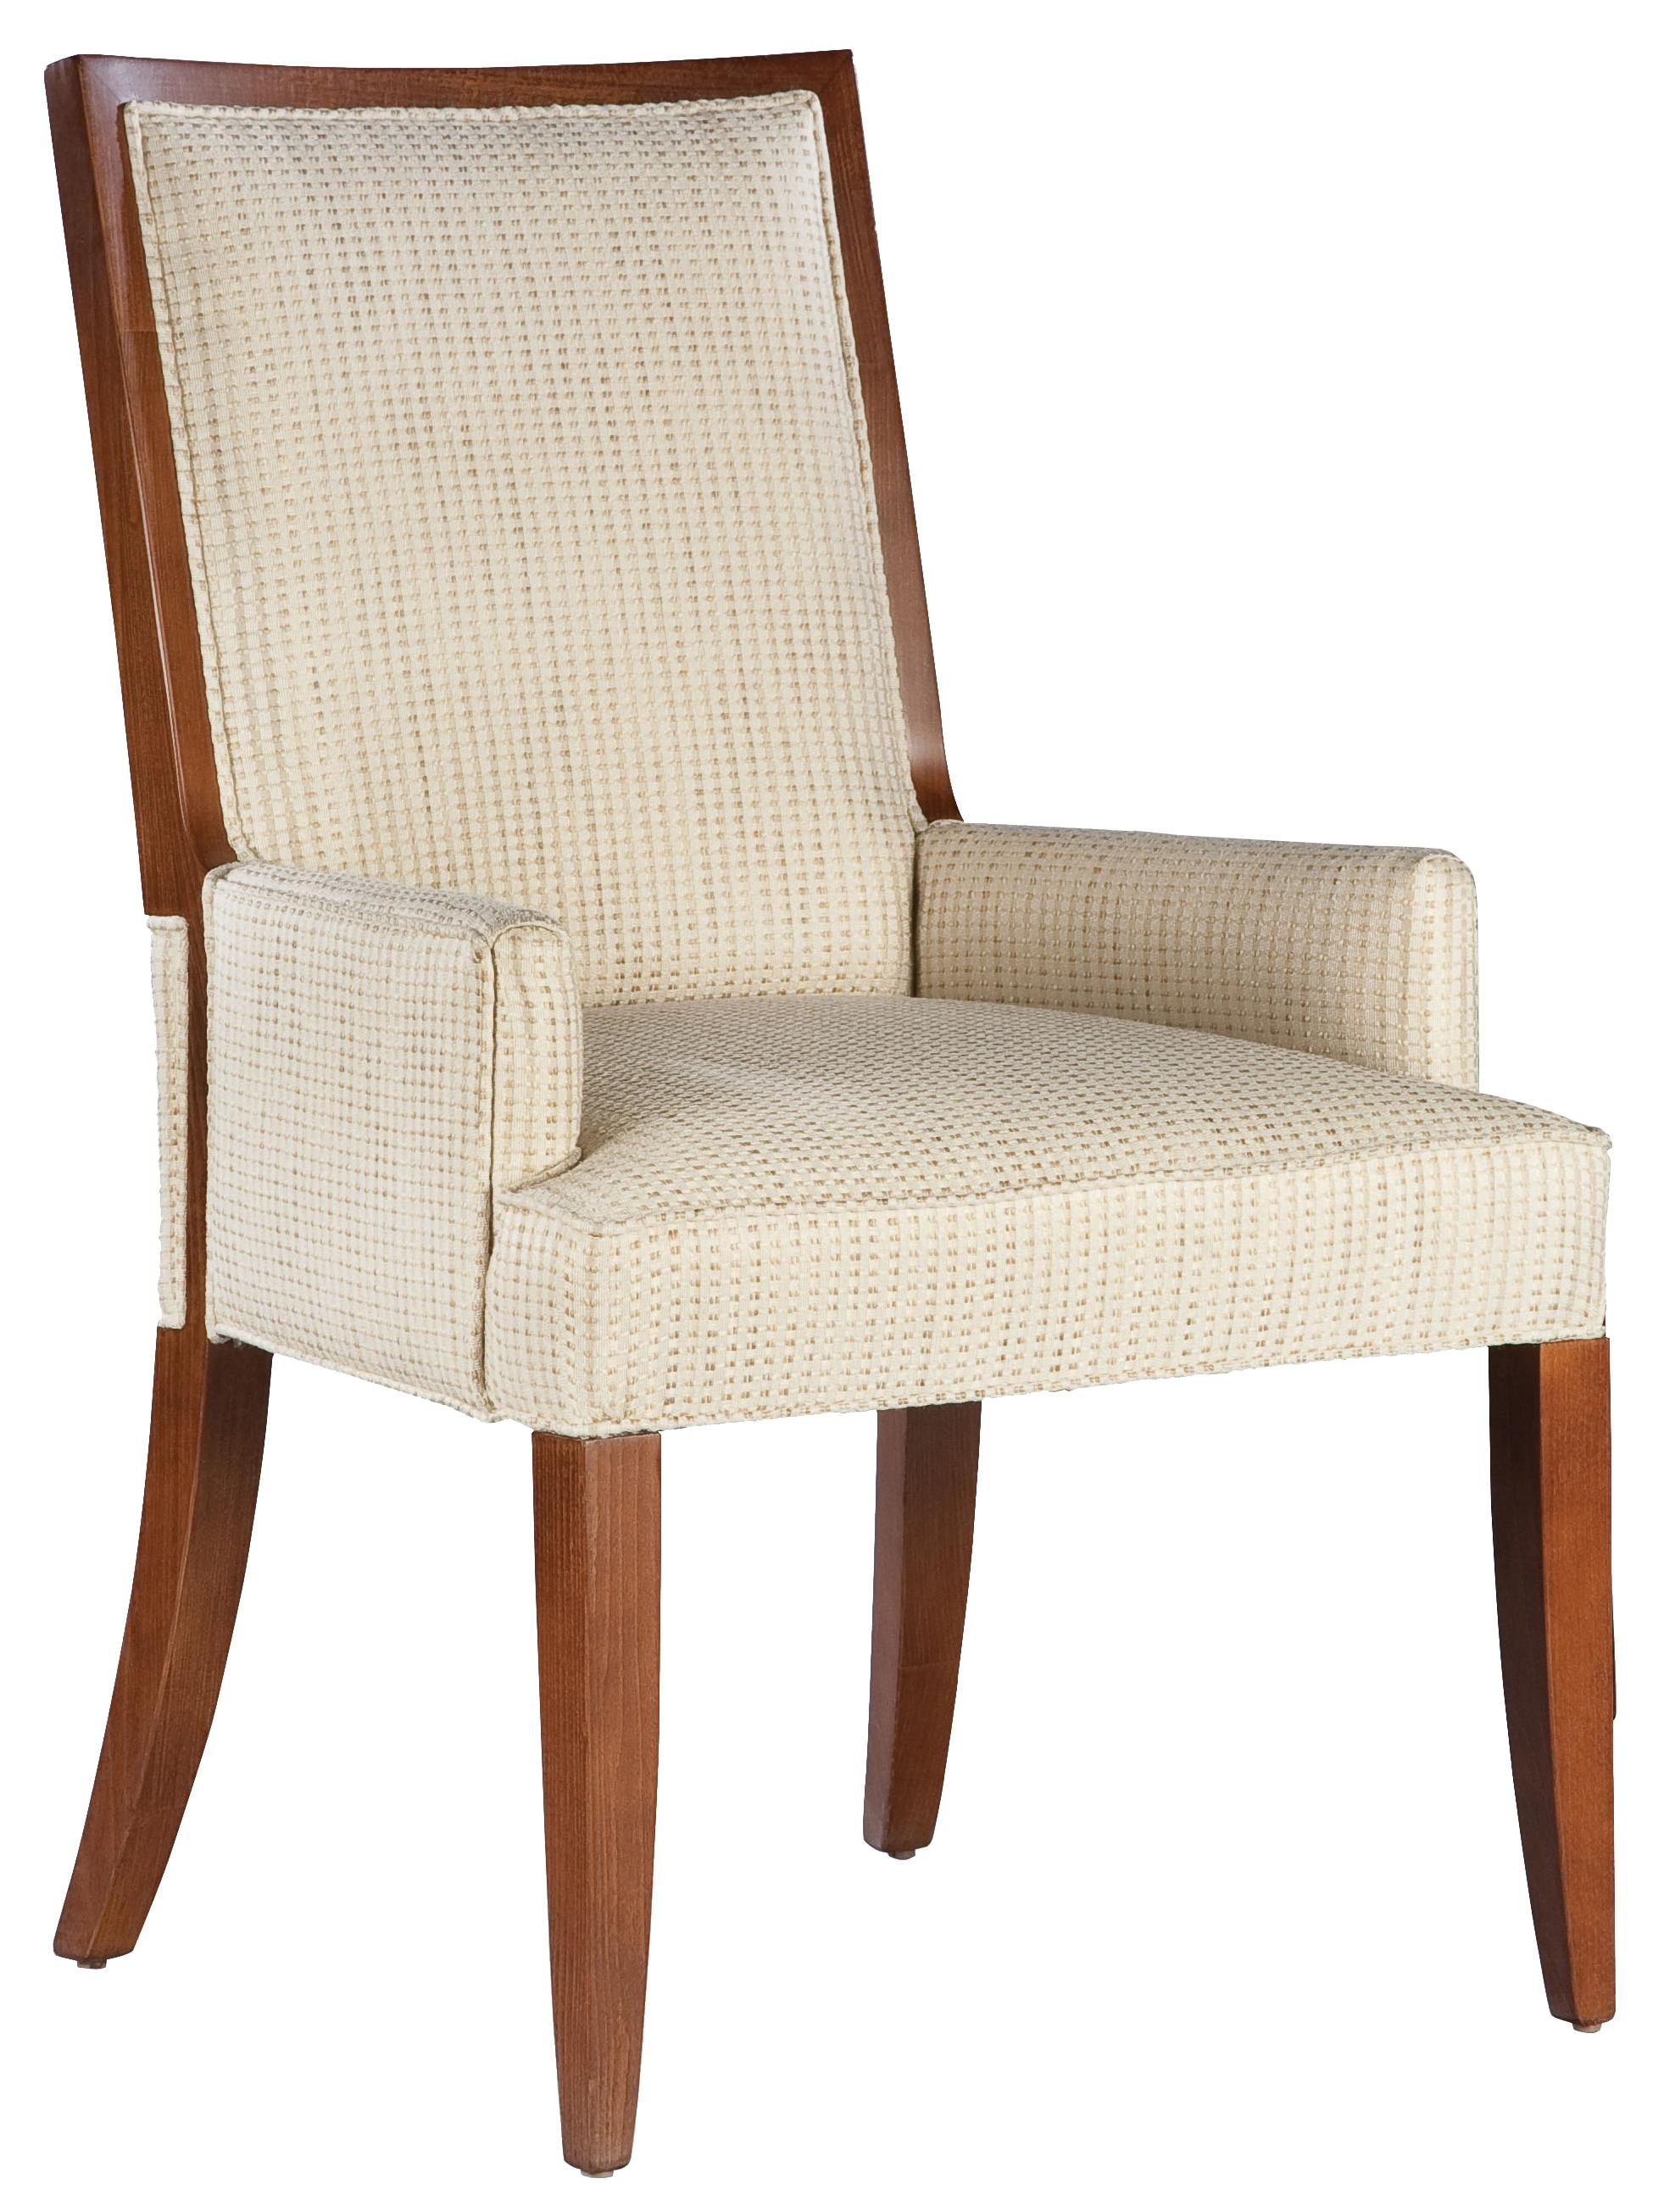 Contemporary Dining Room Arm Chair